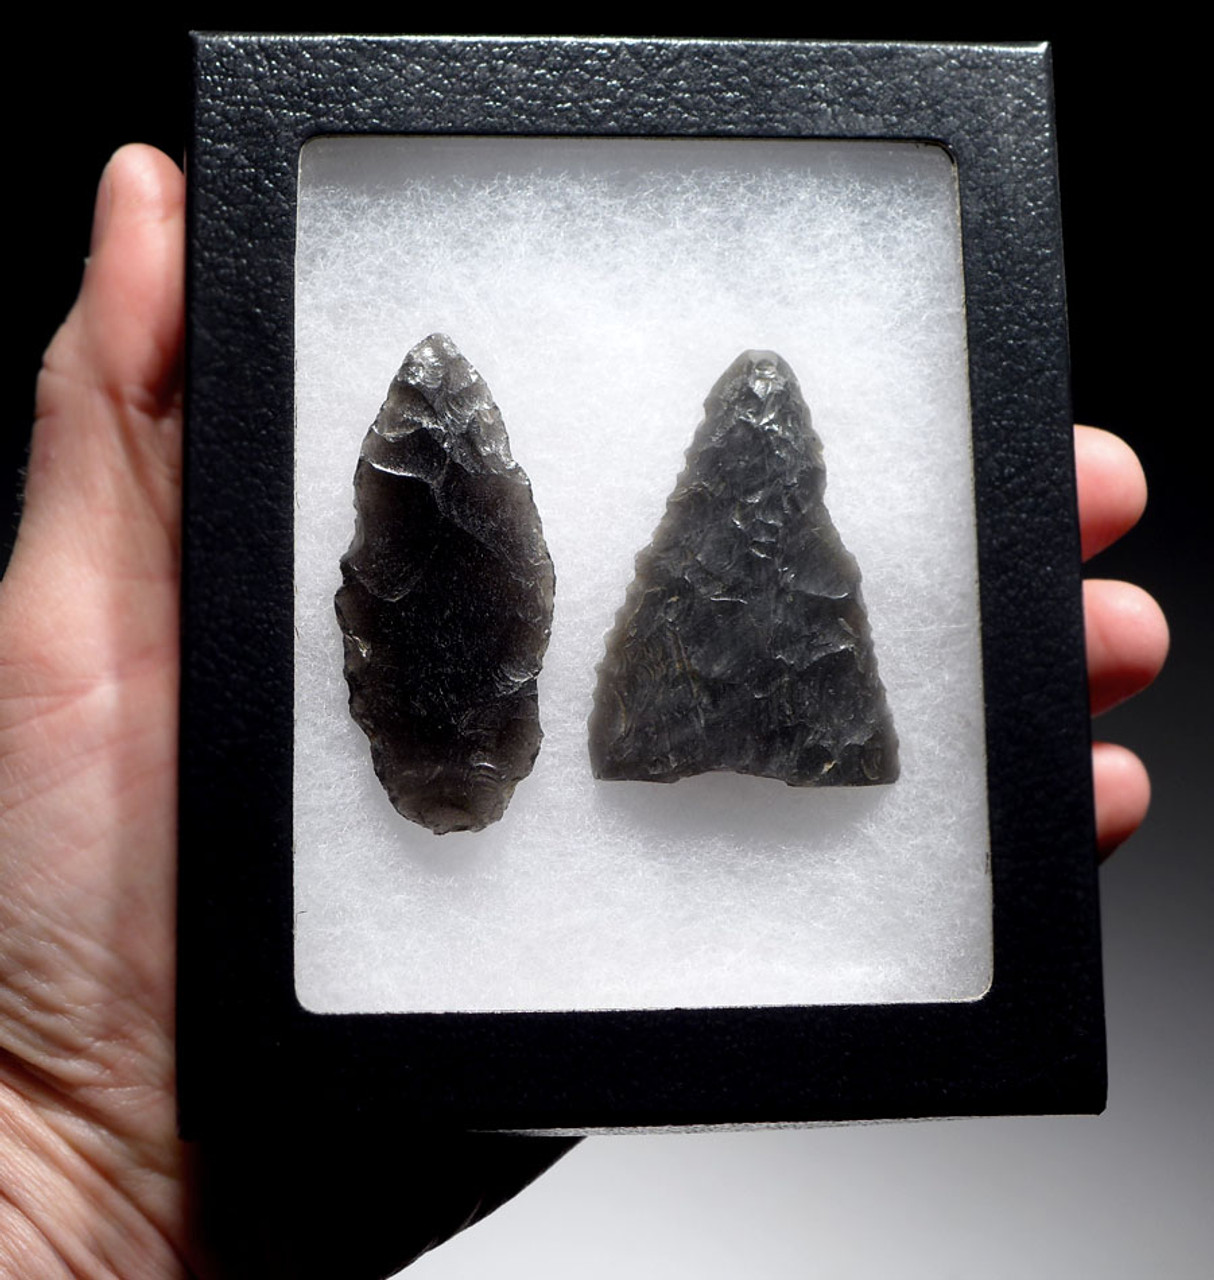 PRE-COLUMBIAN OBSIDIAN WEAPONS